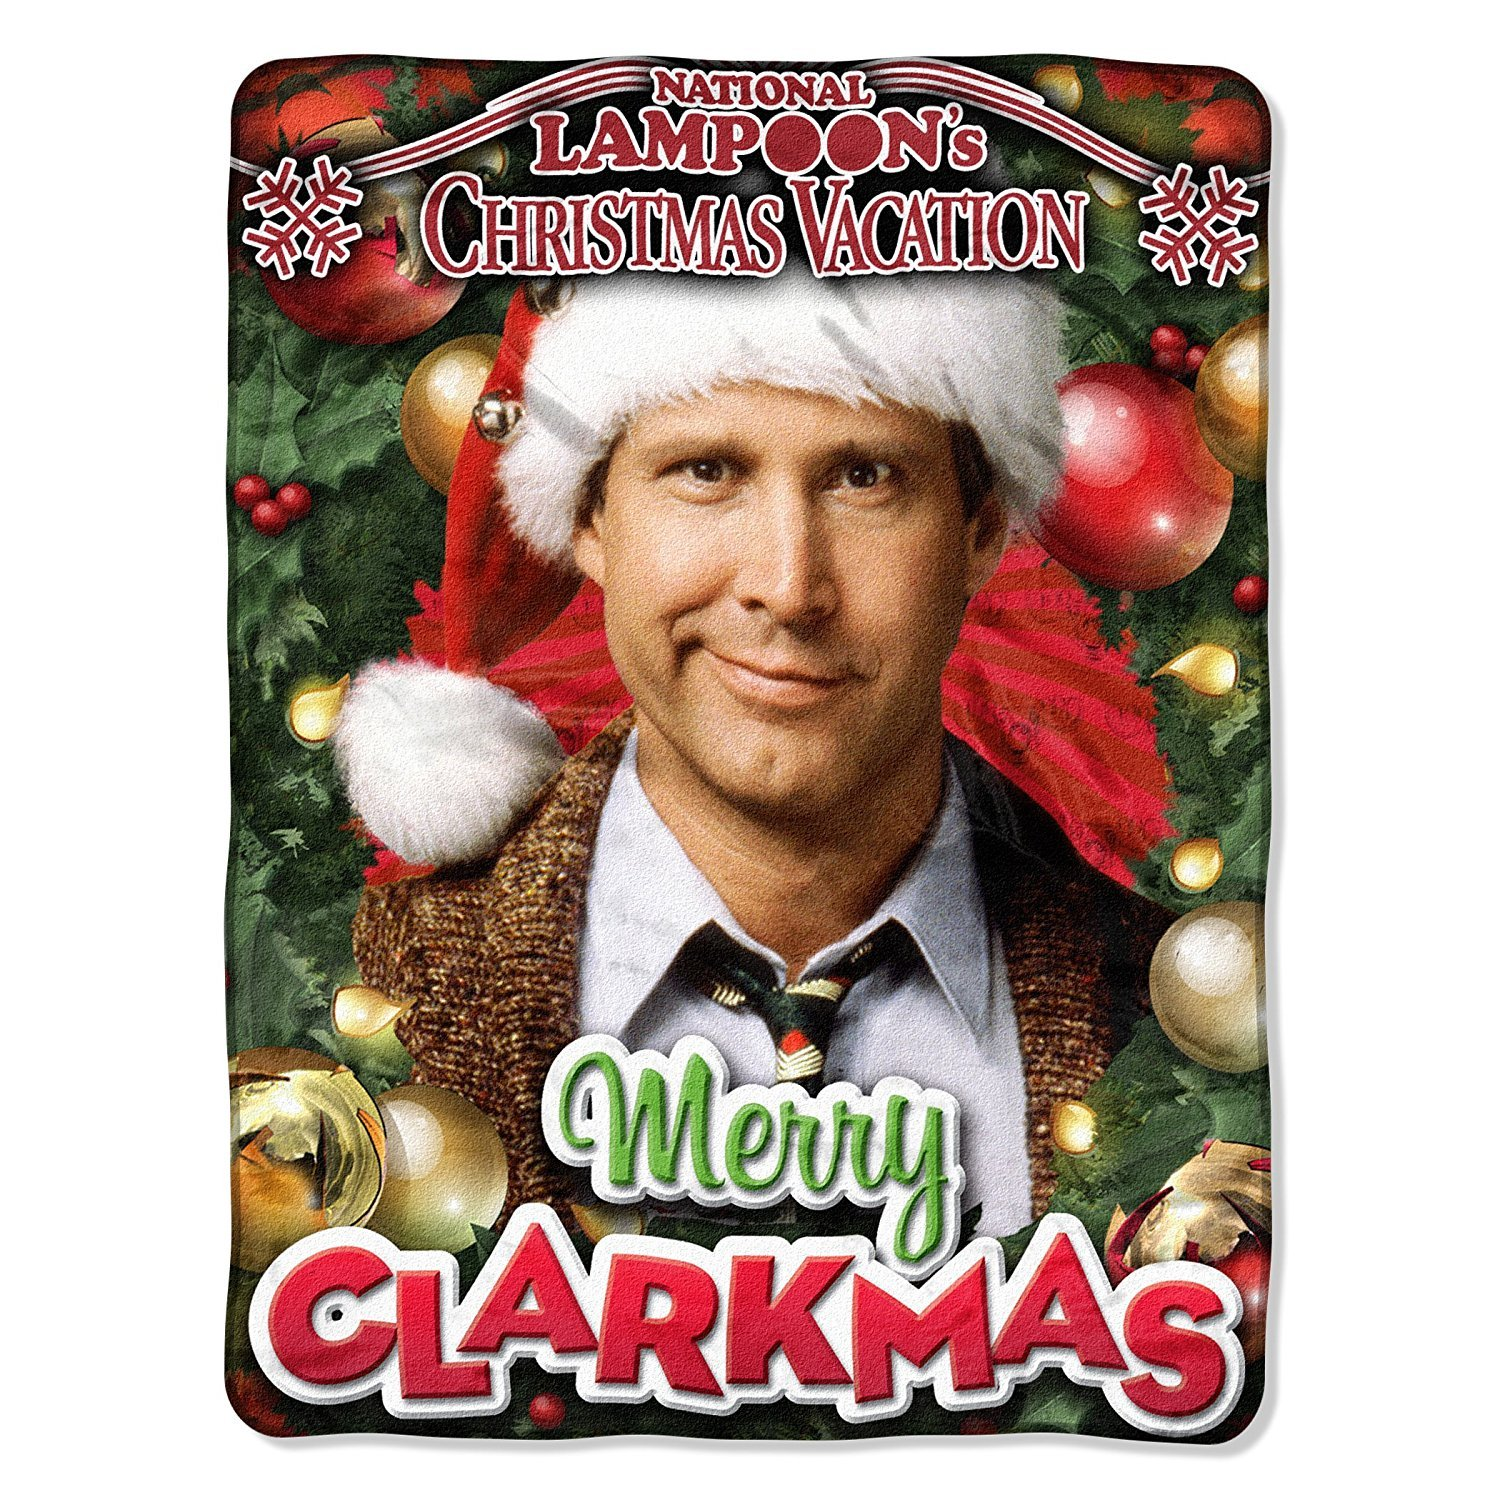 Warner Brothers National Lampoon's Christmas Vacation, Merry Clarkmas Micro Raschel Throw Blanket, 46'' x 60''